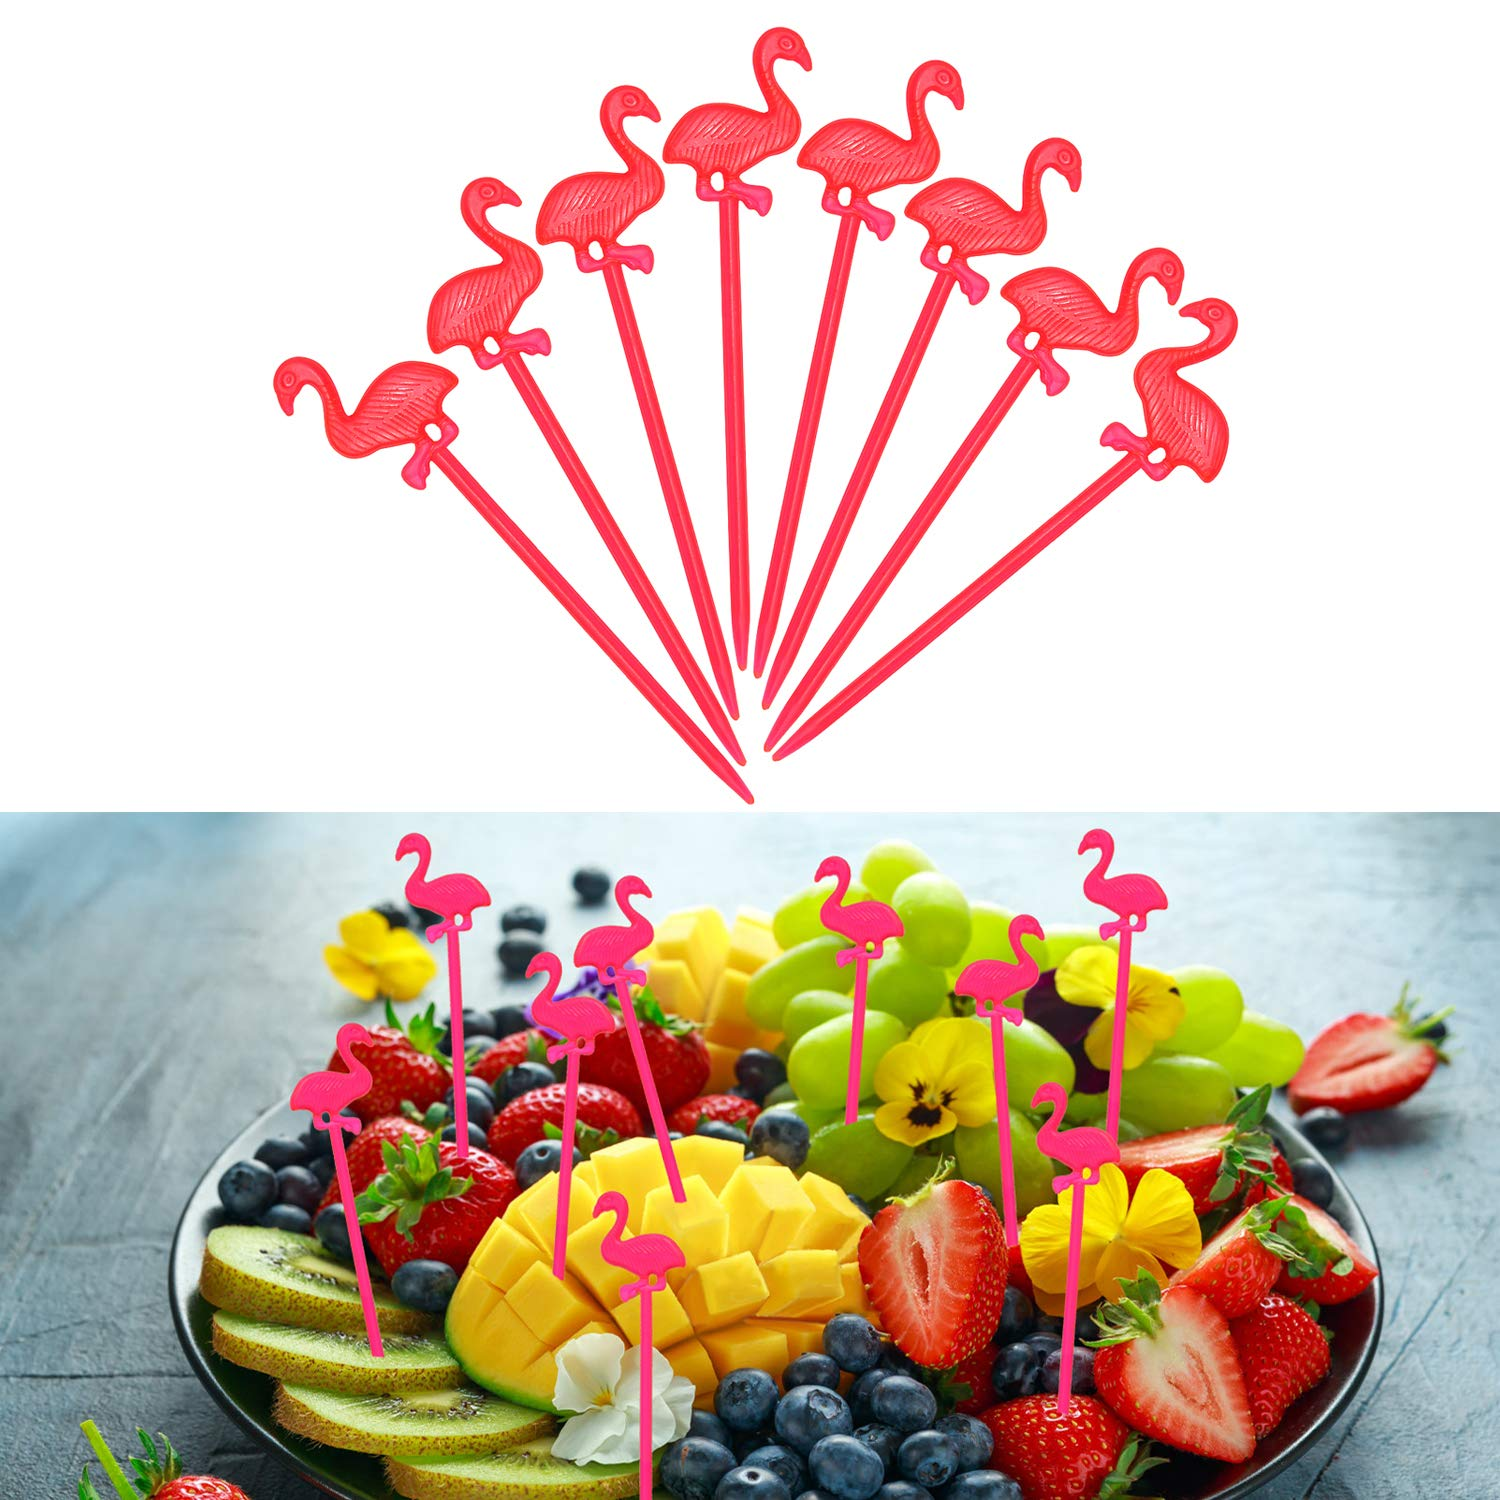 LGDehome 350 Pieces Cute Flamingo Picks Pink Cocktail Picks with Flamingo Drinking Straws Rose Bendable Cocktail Straws for Tropical Party Birthday Wedding Tableware Decoration by LGDehome (Image #3)